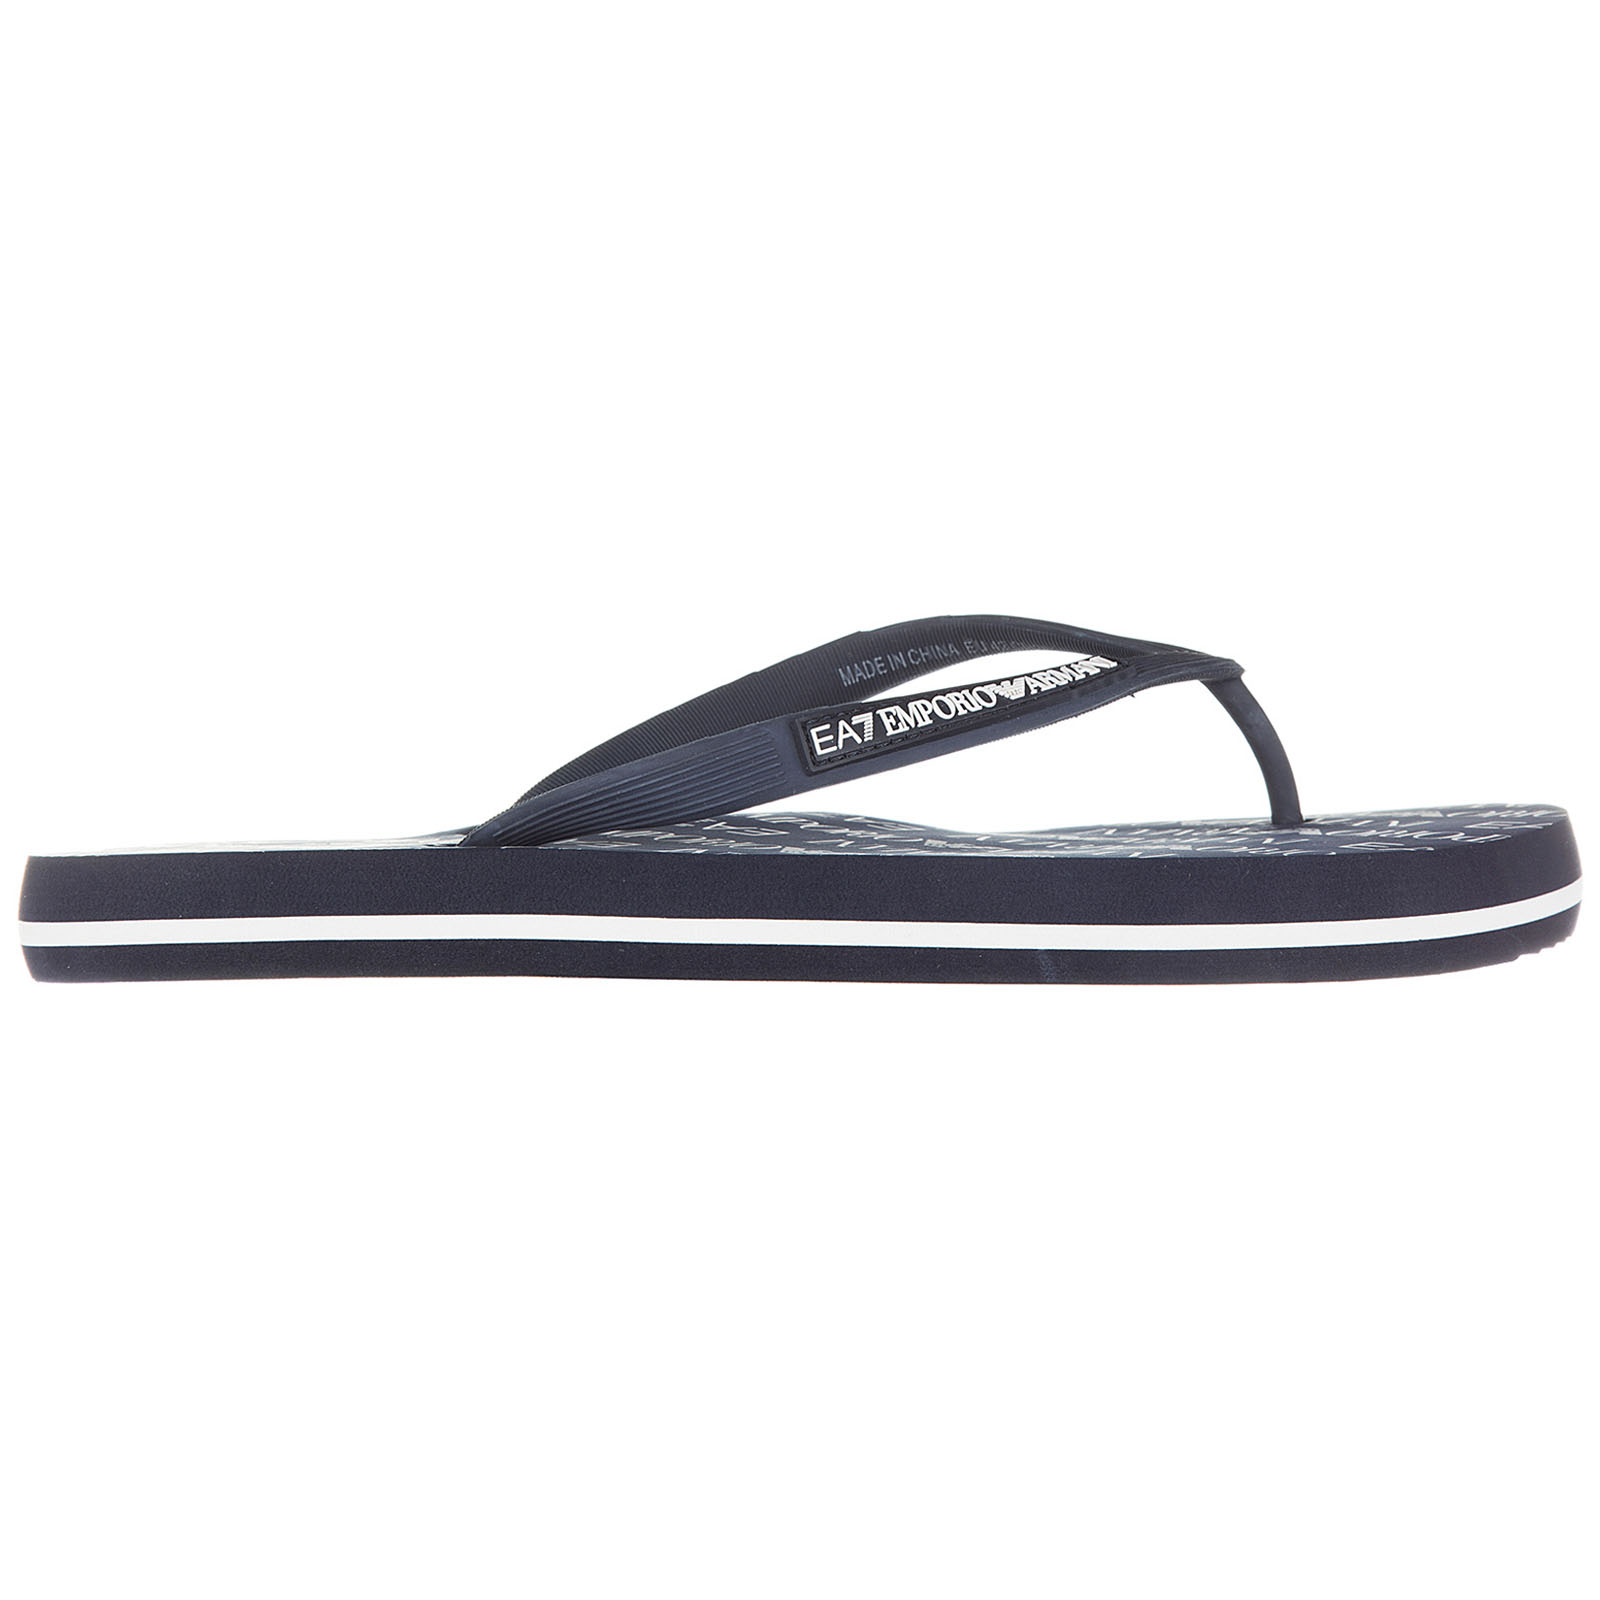 7a7e53be0 Emporio Armani EA7 Men s rubber flip flops sandals sea world